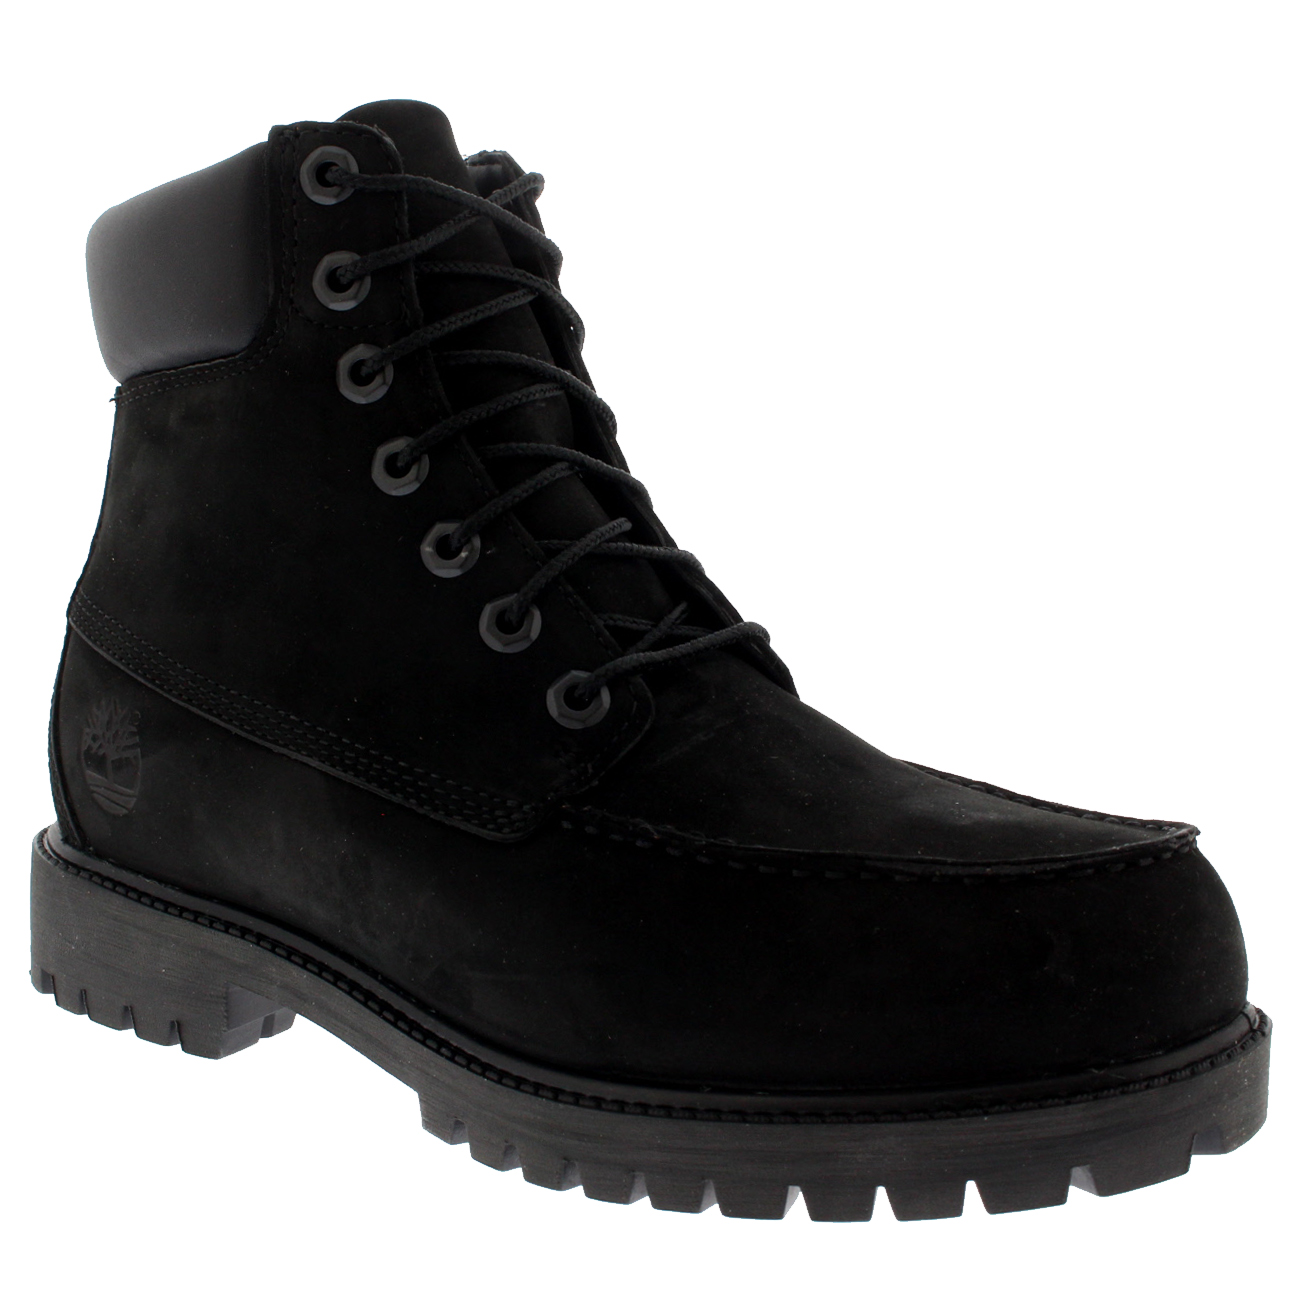 Mens Timberalnd 6 6 6 Inch Icon Moc Waterproof Classic Winter Shoe Boots UK 6-13 2ee249